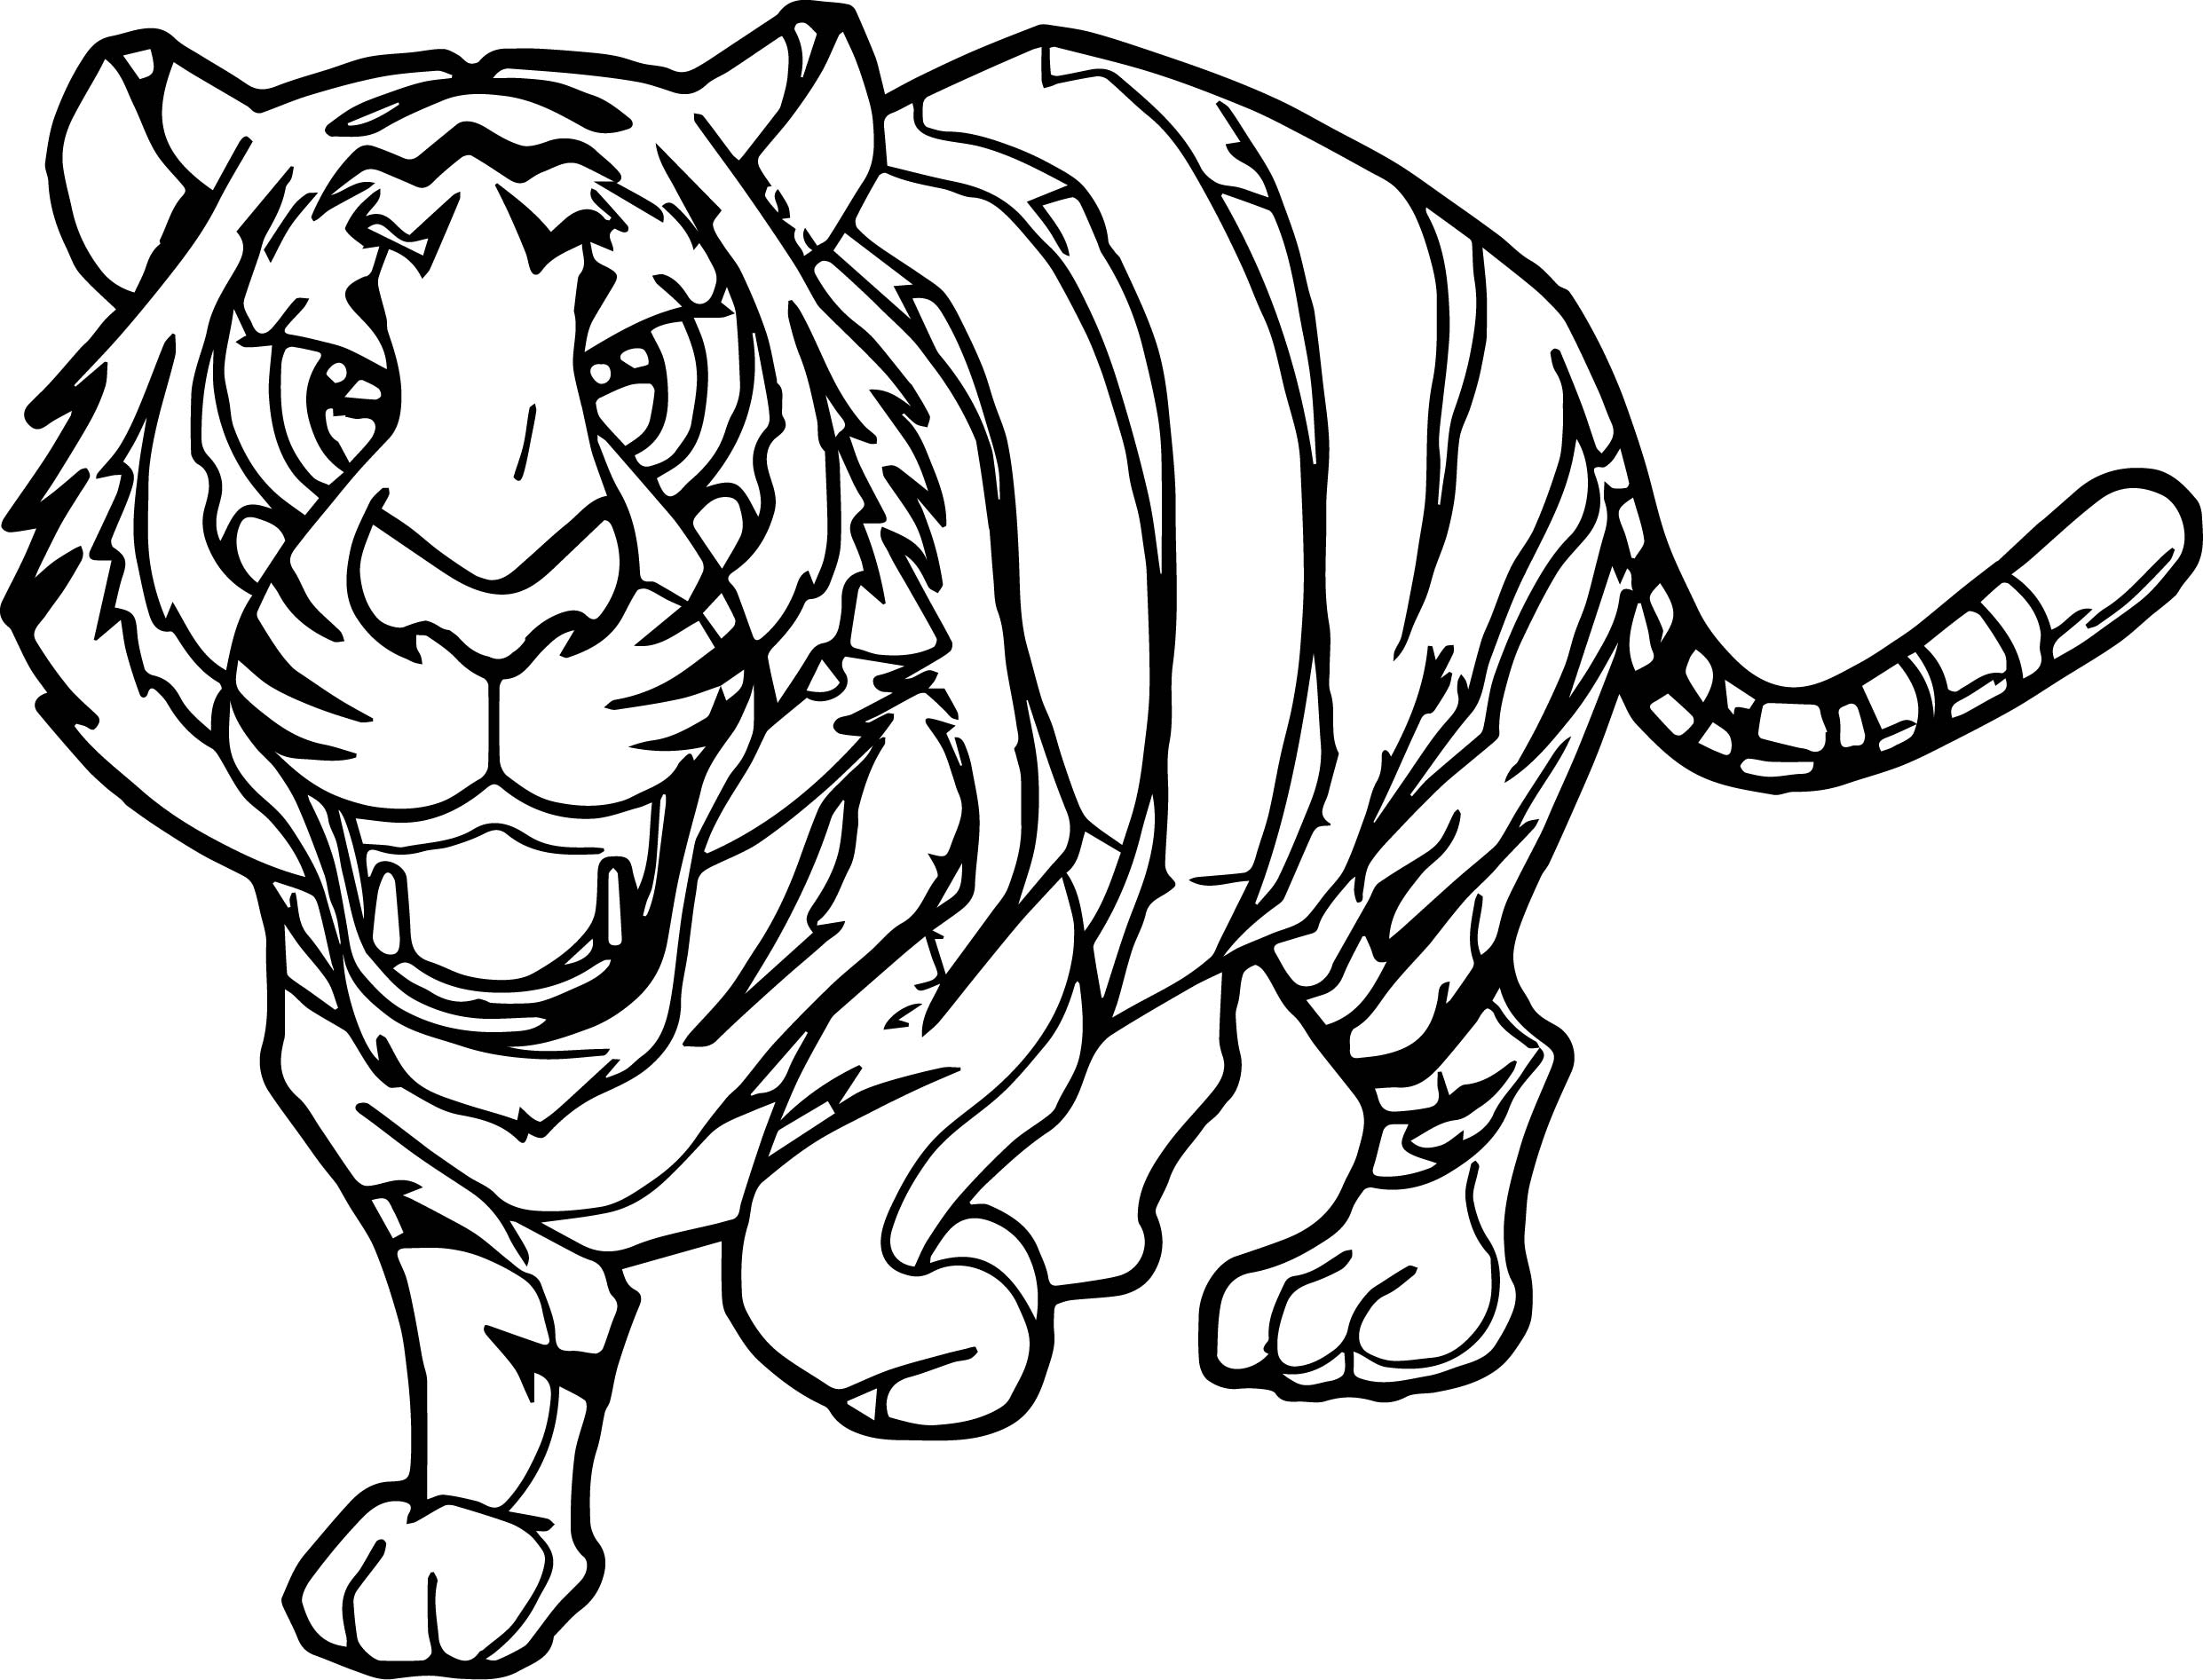 2482x1893 Clouded Leopard Coloring Page Fancy Clouded Leopard Coloring Page